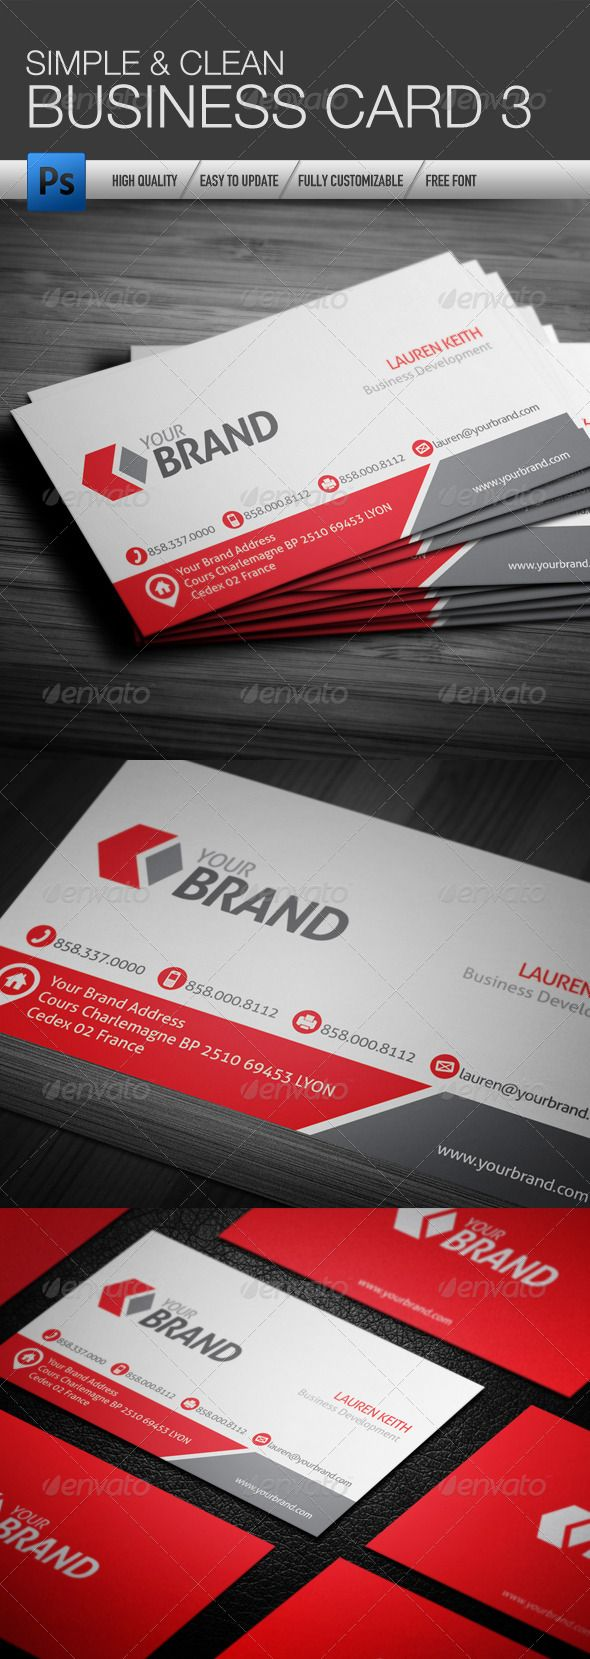 The 25 best cleaning business cards ideas on pinterest visit simple and clean business card 3 magicingreecefo Gallery